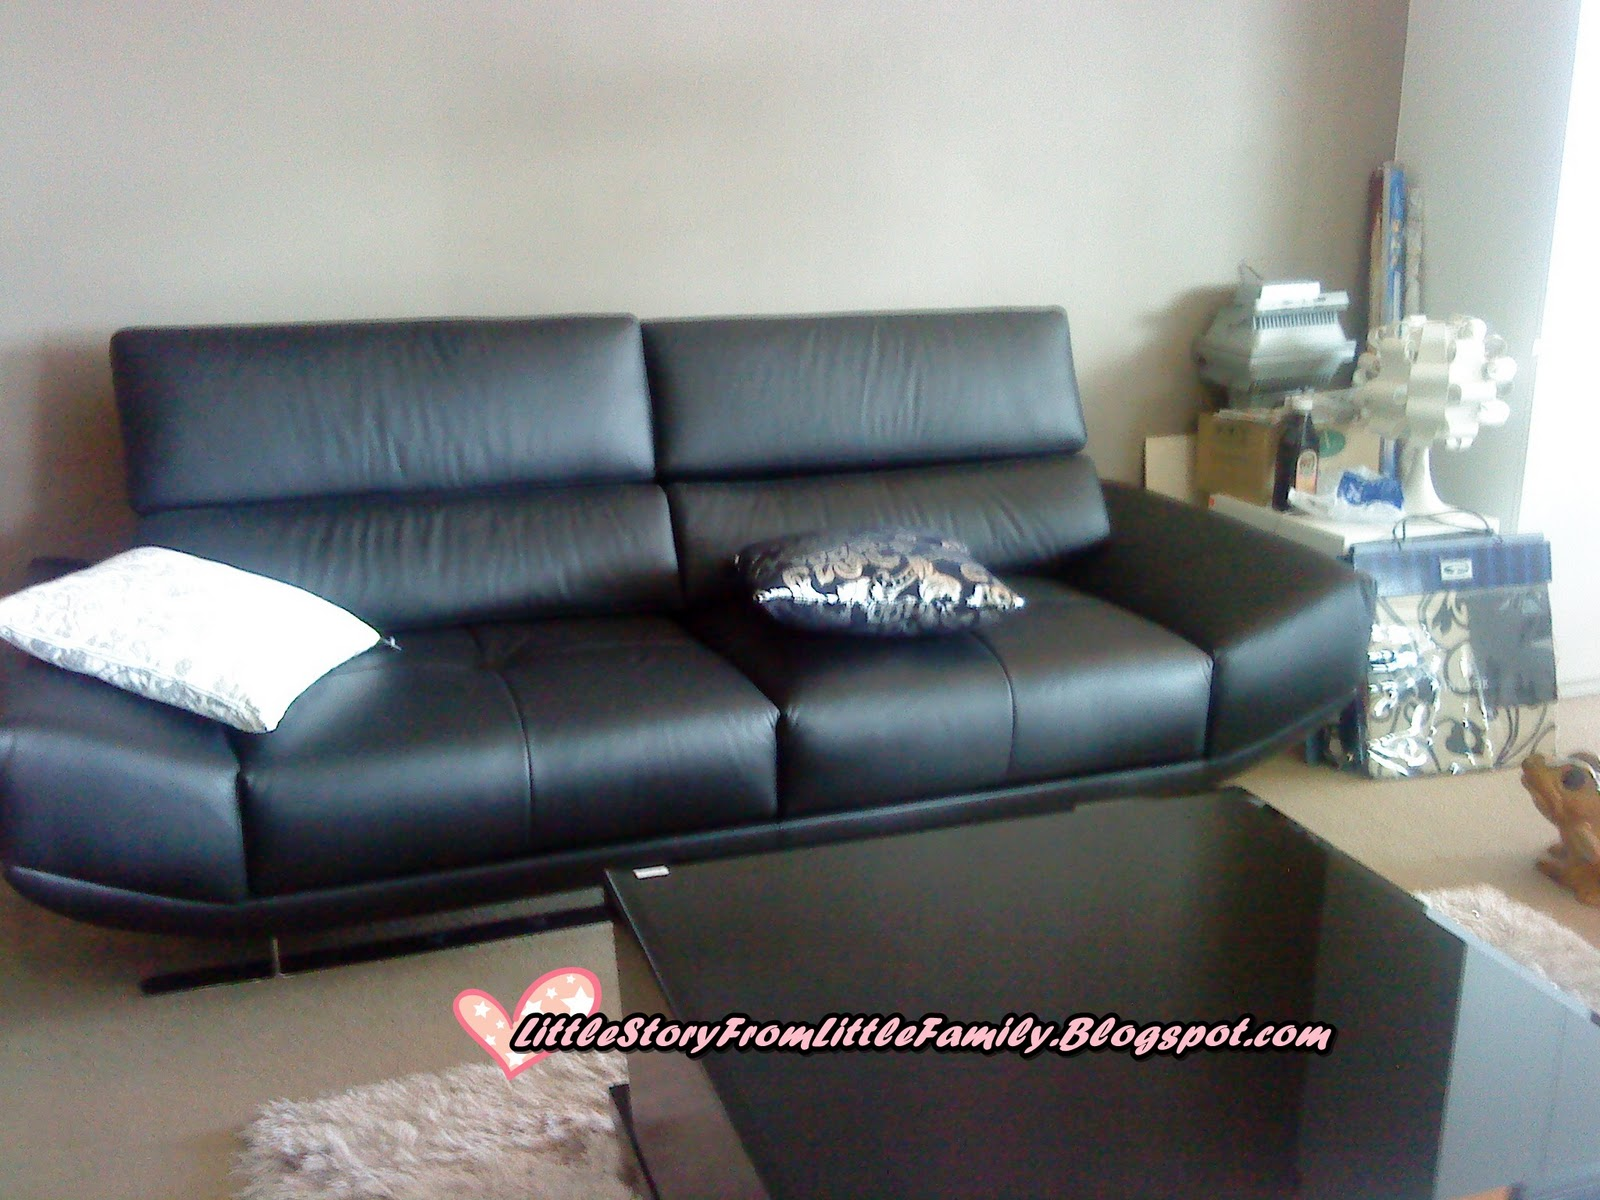 harga sofa ikea malaysia lexington furniture reviews murah kluang brokeasshome